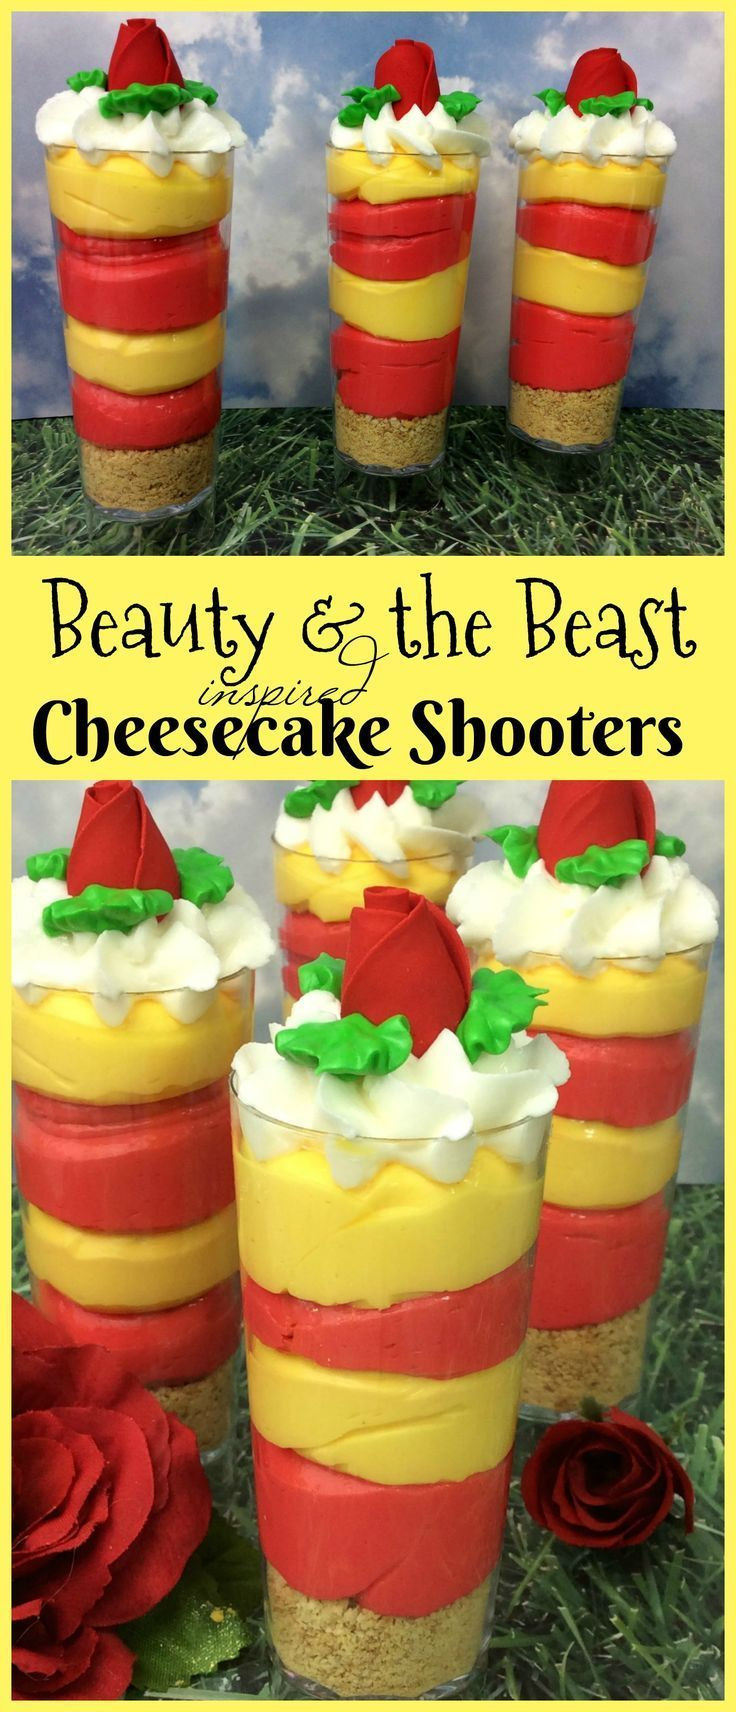 This delicious food tutorial is inspired by Beauty & the Beast. Cheesecake Shooters are so delicious and this recipe can be put together in mere minutes! Such a fun princess party idea, cocktail party idea, or just a fun Disney celebration treat!